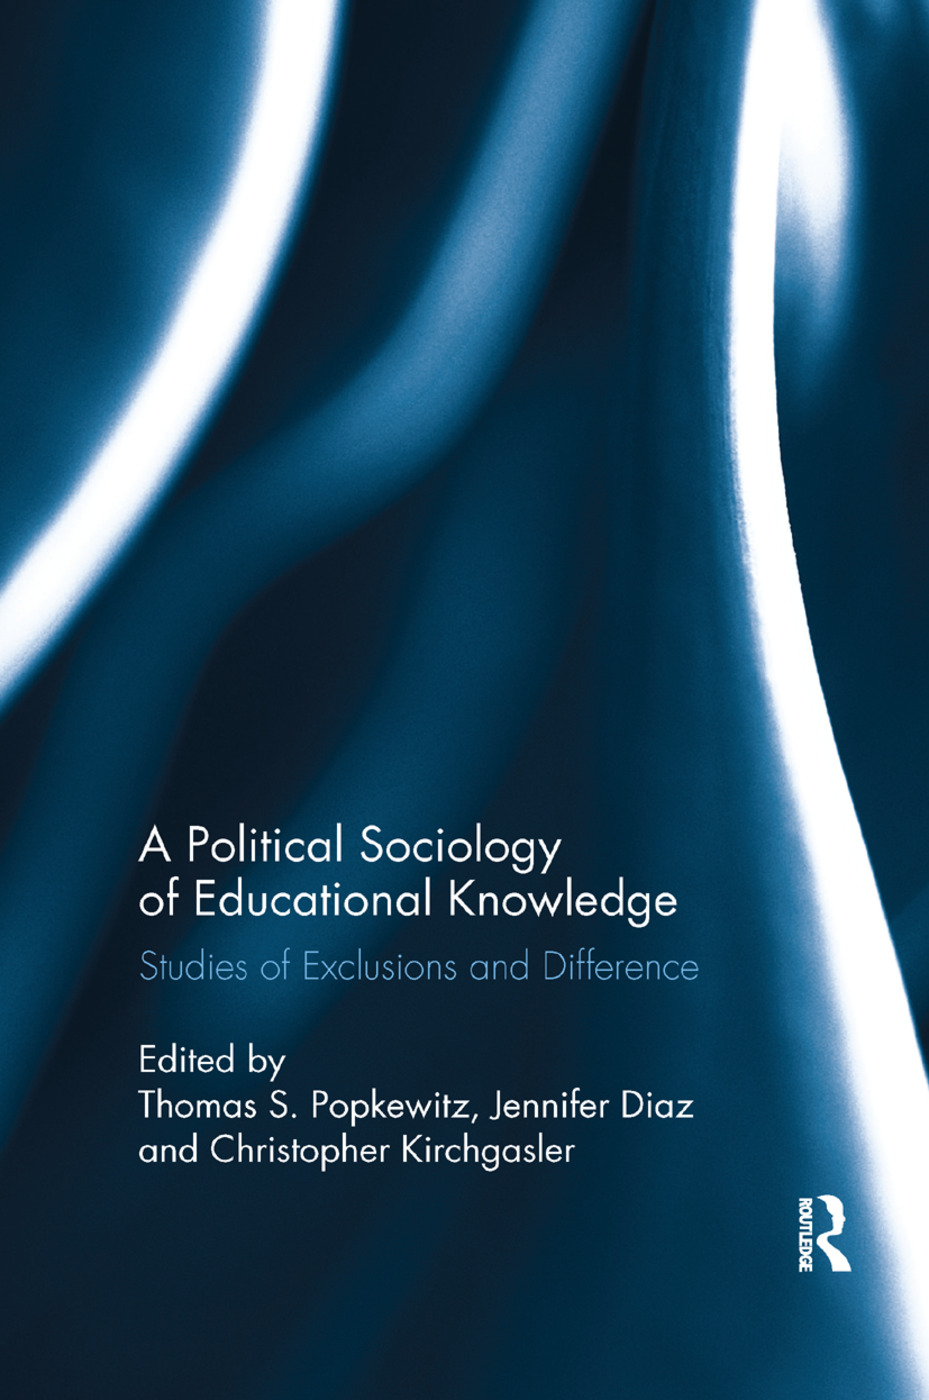 A Political Sociology of Educational Knowledge: Studies of Exclusions and Difference book cover